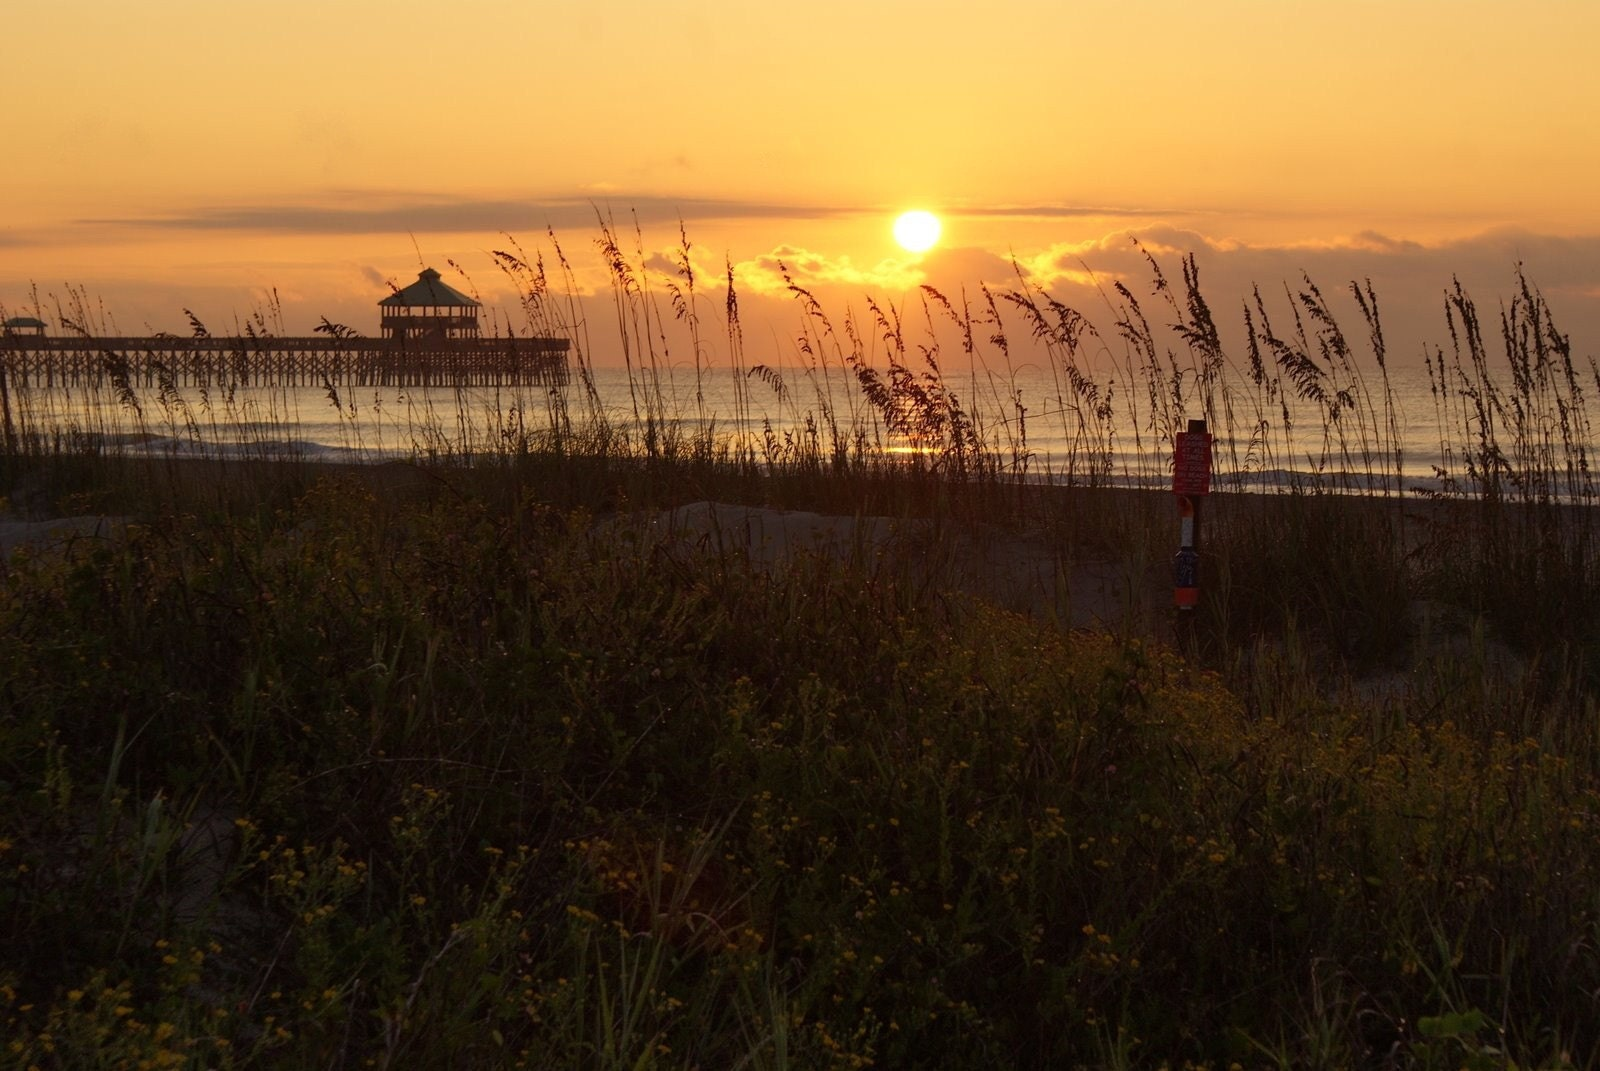 Sunrise at Folly Beach in Charleston, South Carolina